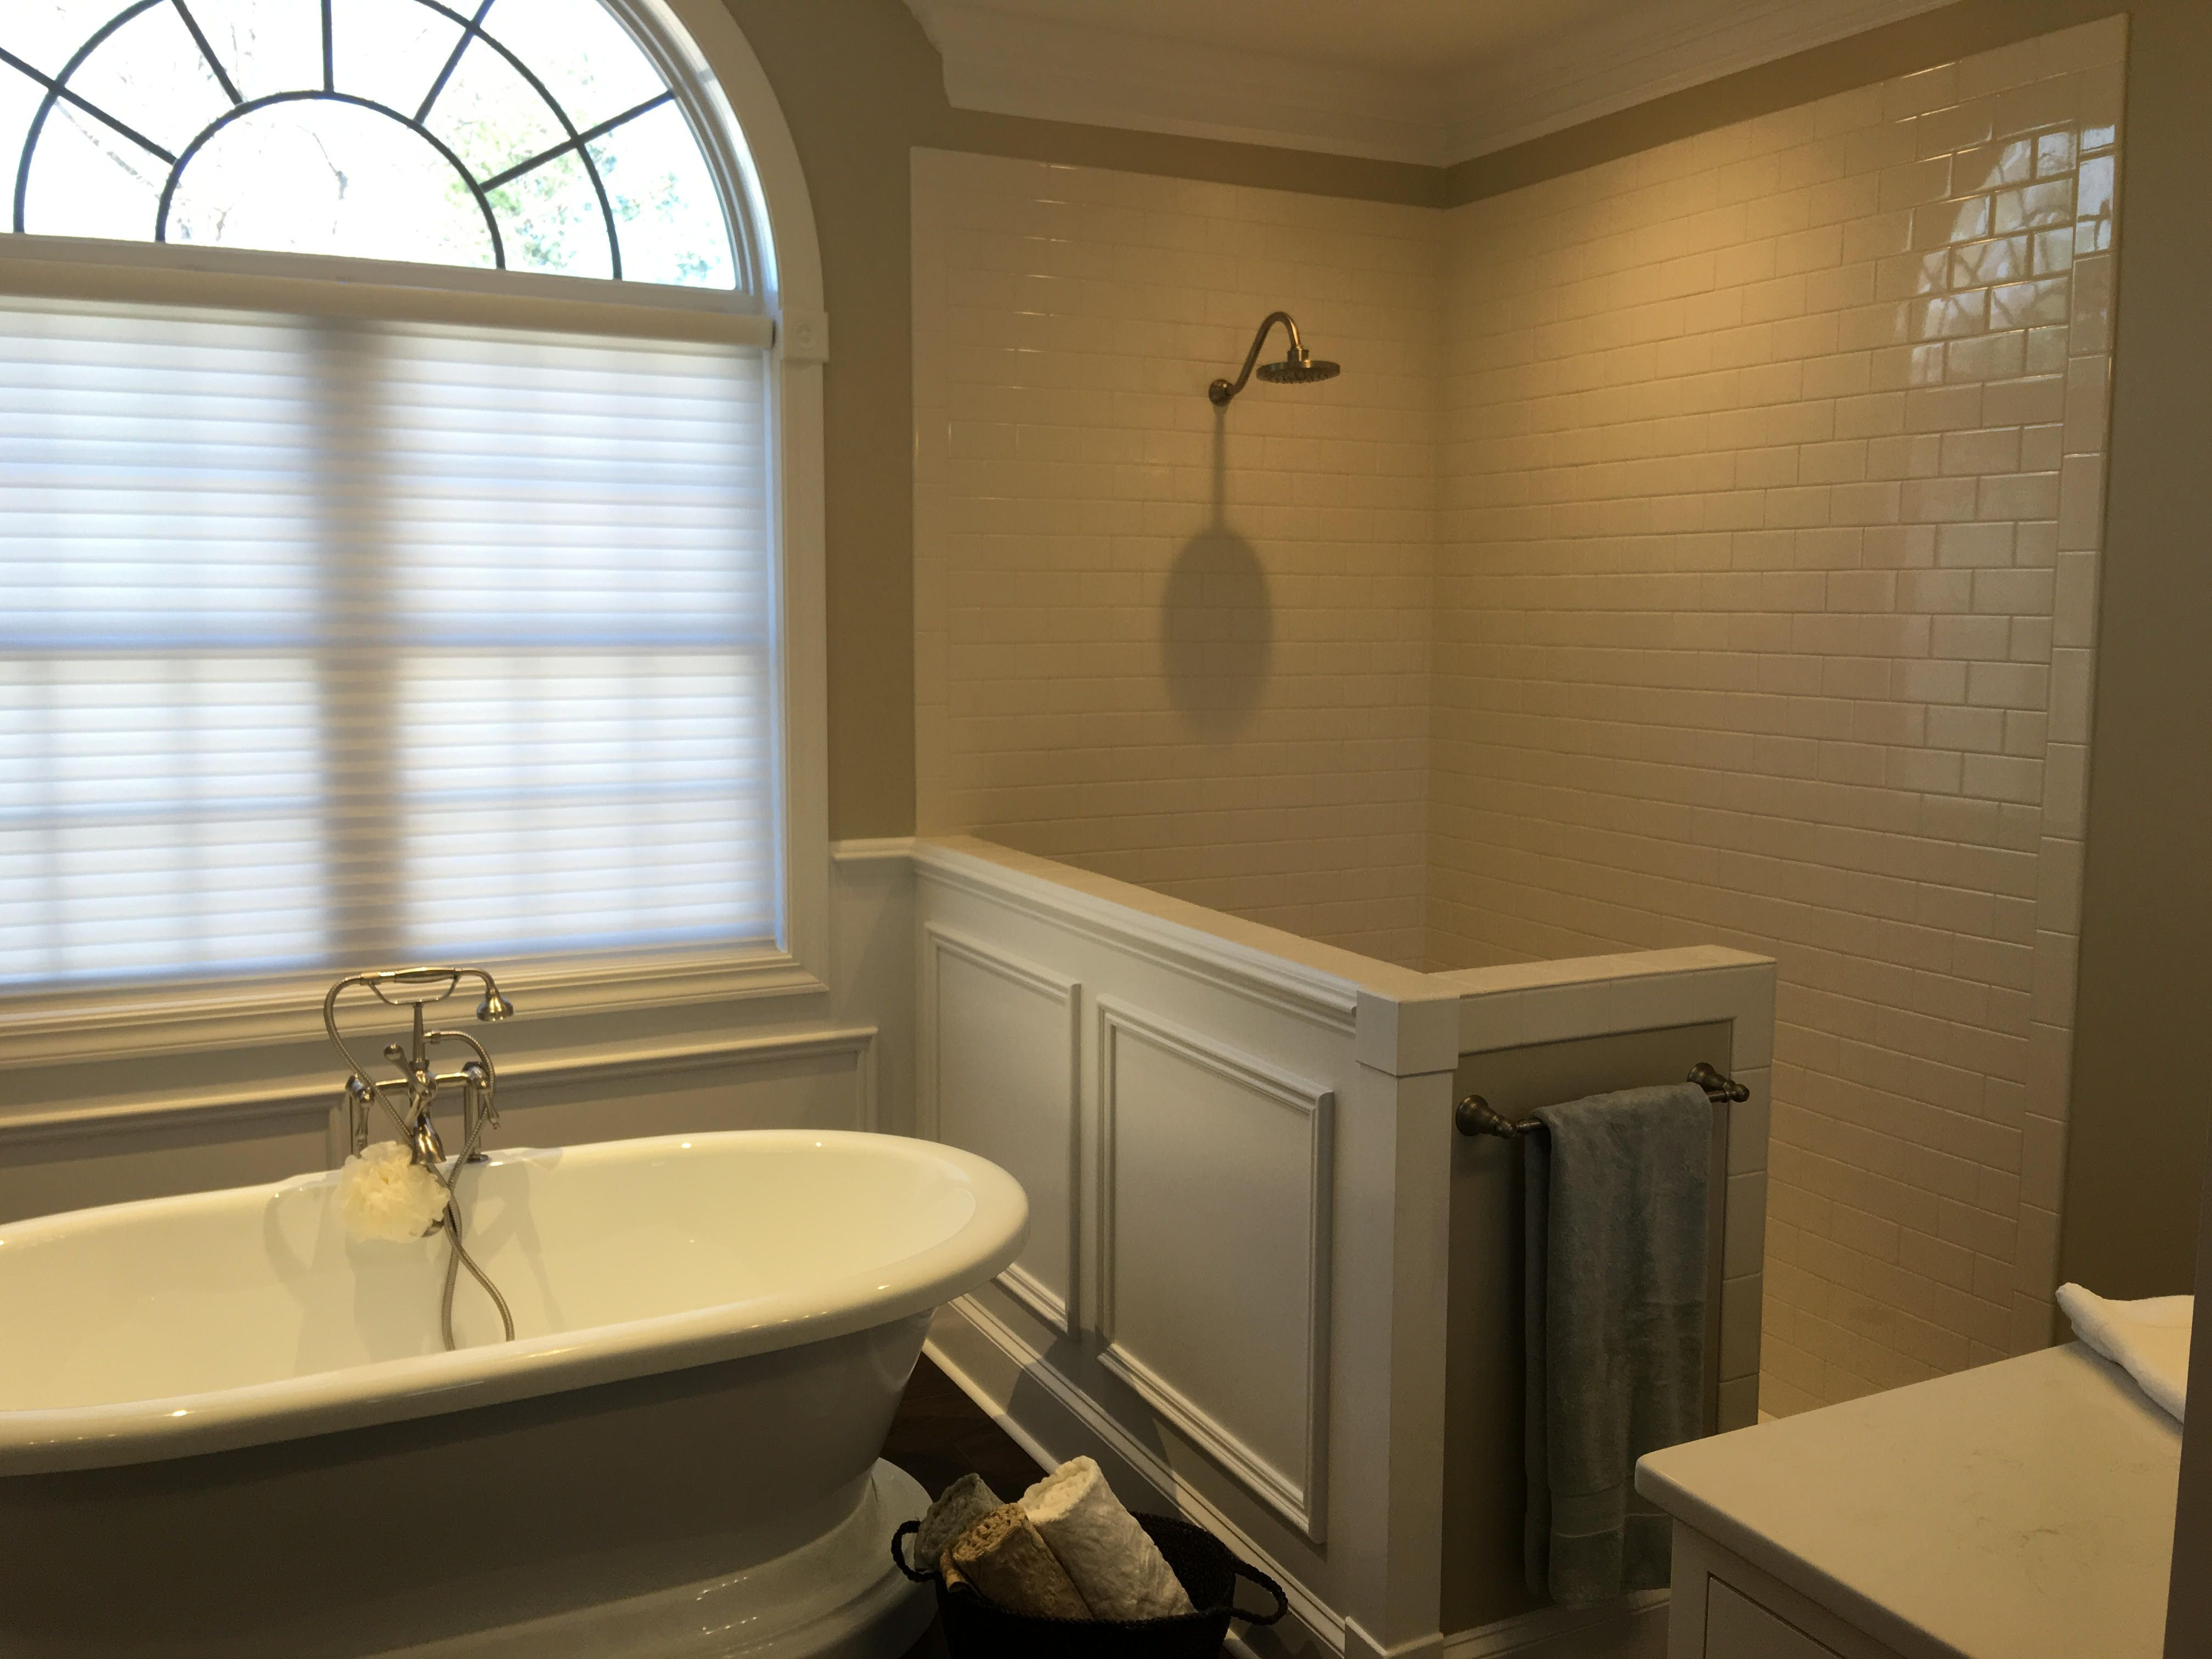 Shower Remodel American Olean 3x6 Subway Tile In Biscuit